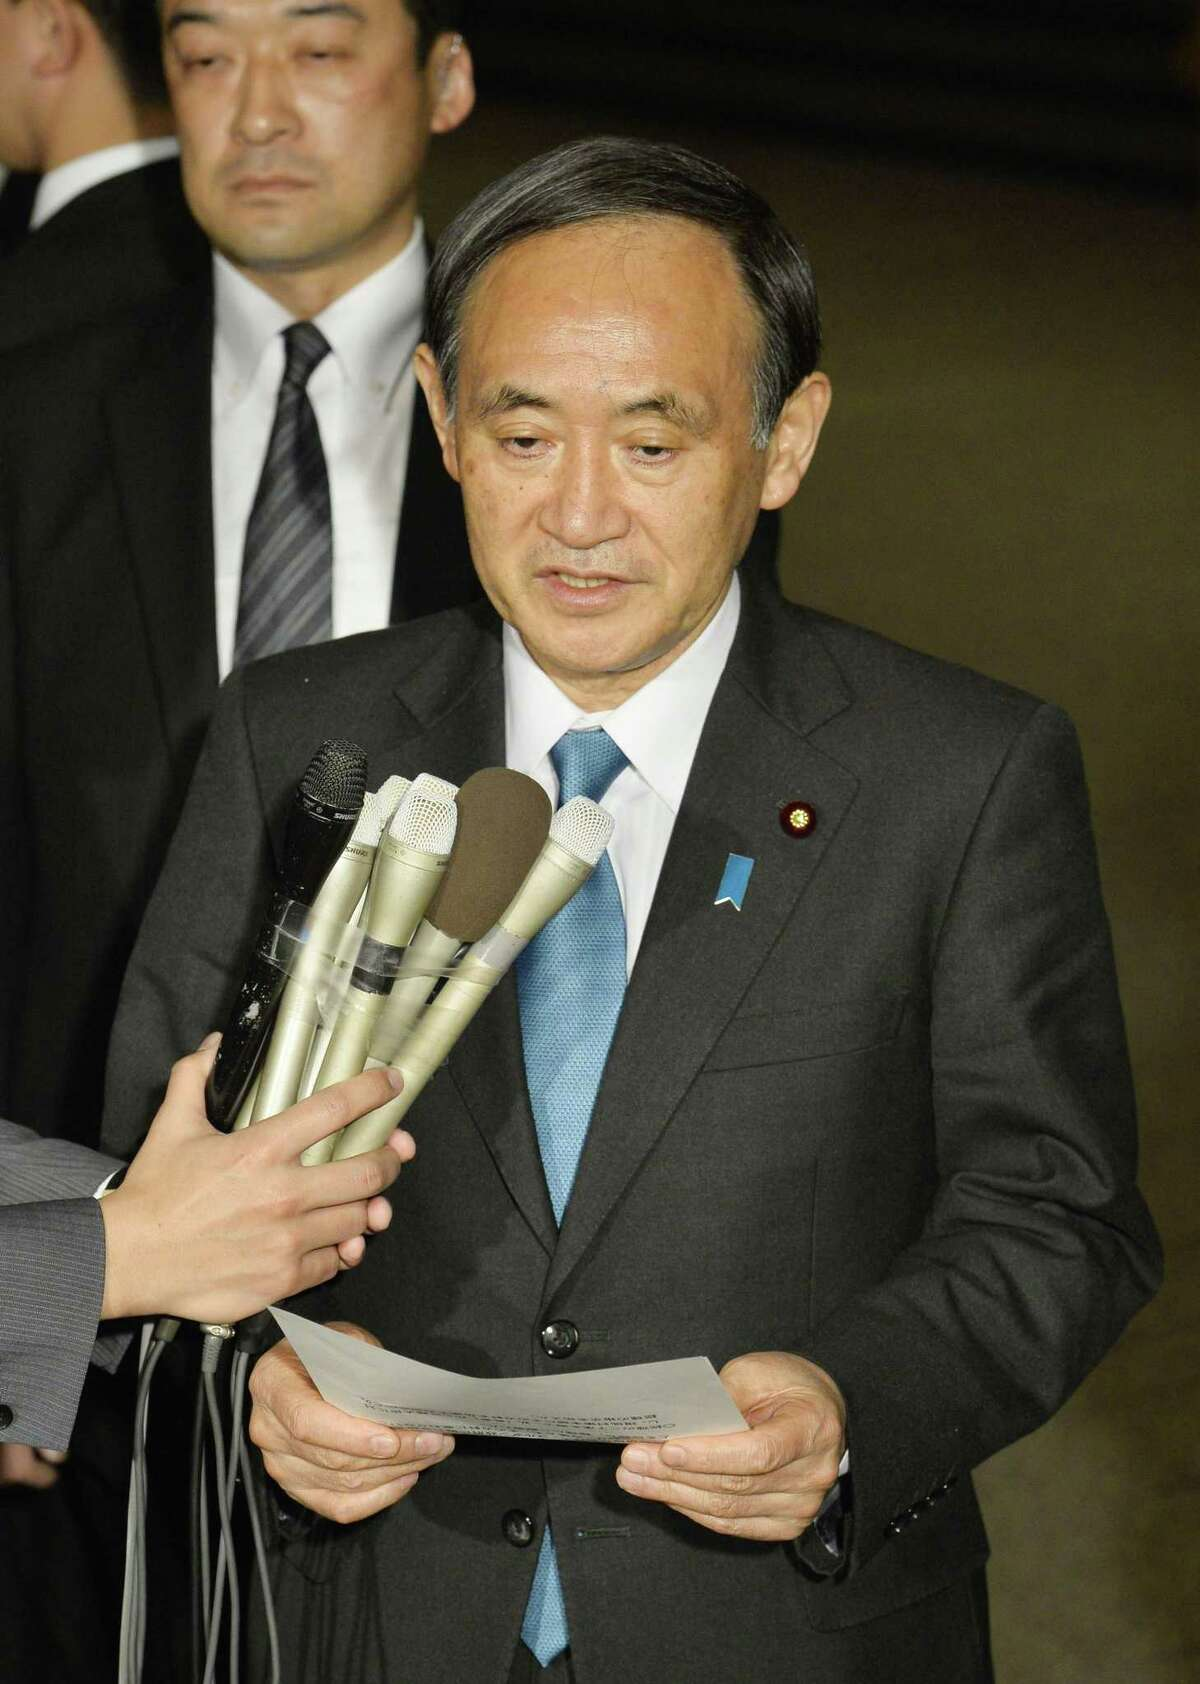 """Japanese government spokesman Chief Cabinet Secretary Yoshihide Suga speaks to the media at the prime minister's office in Tokyo on Jan. 28, 2015 shortly after the latest online message purportedly from the Islamic State group warmed that Japanese hostage Kenji Goto and a Jordanian pilot the extremists hold have less than """"24 hours left to live."""""""